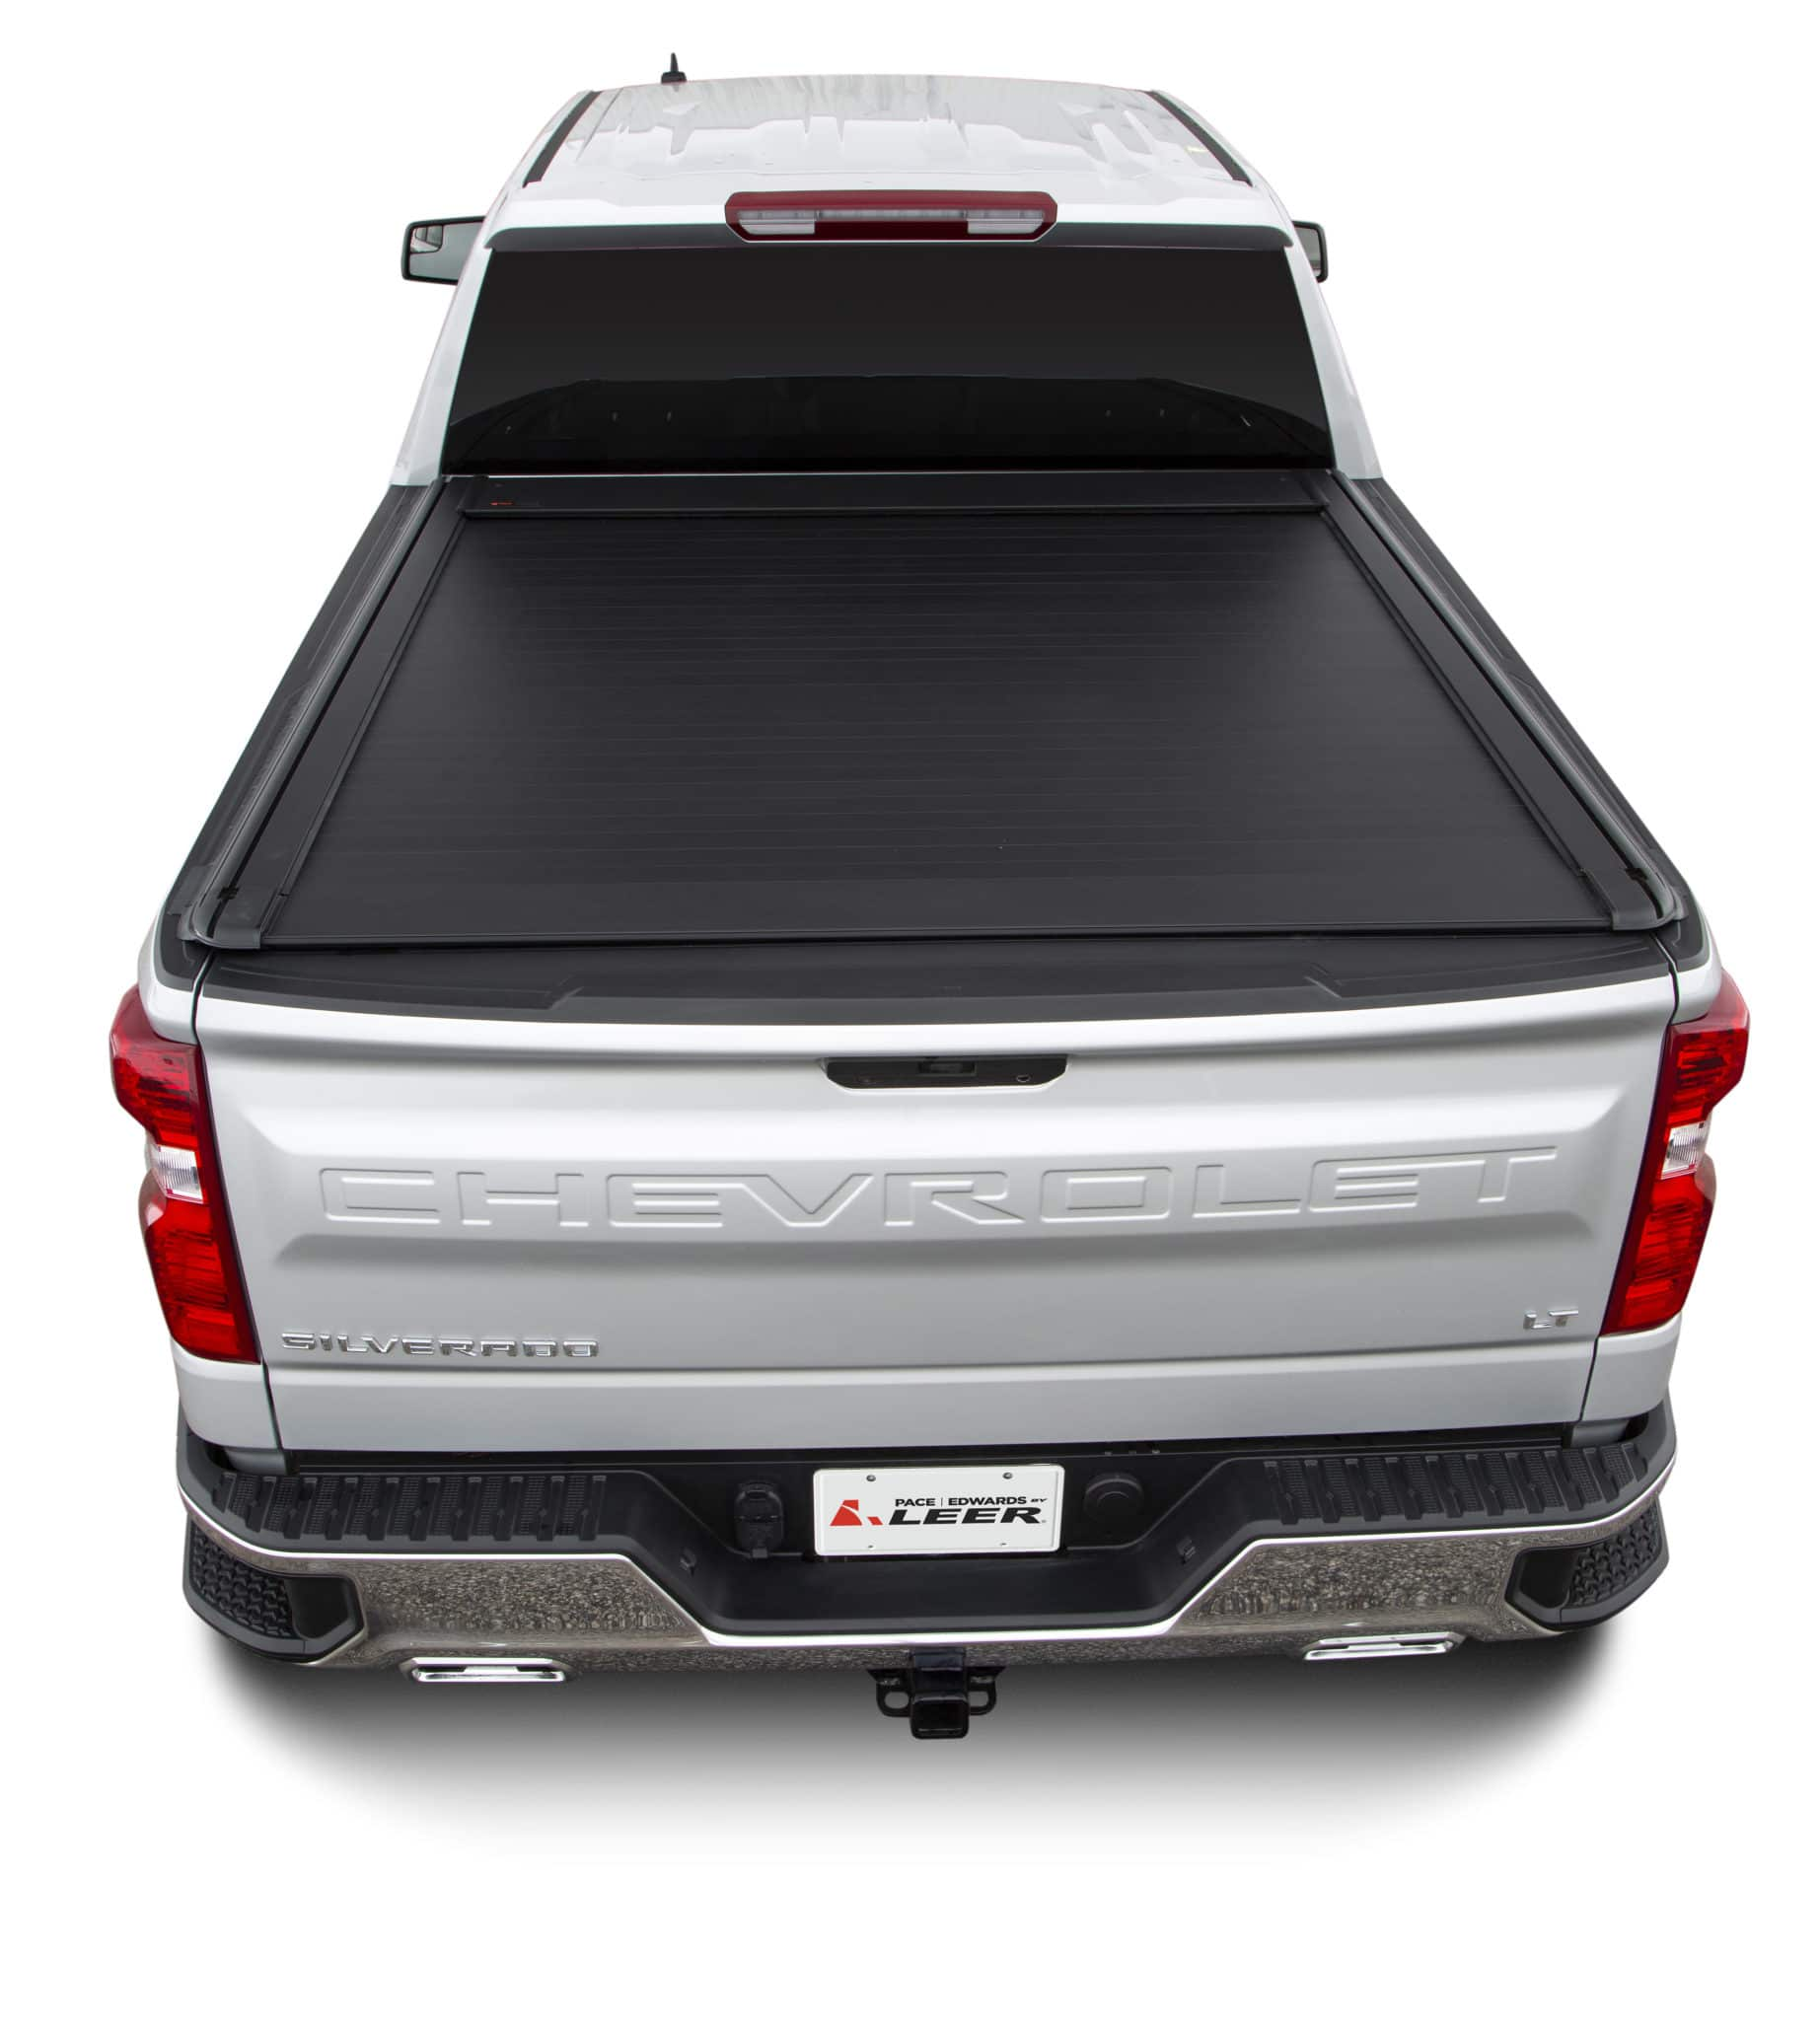 Pace Edwards Ultragroove Electric Tonneau Cover - with Slotted Rails for Racks